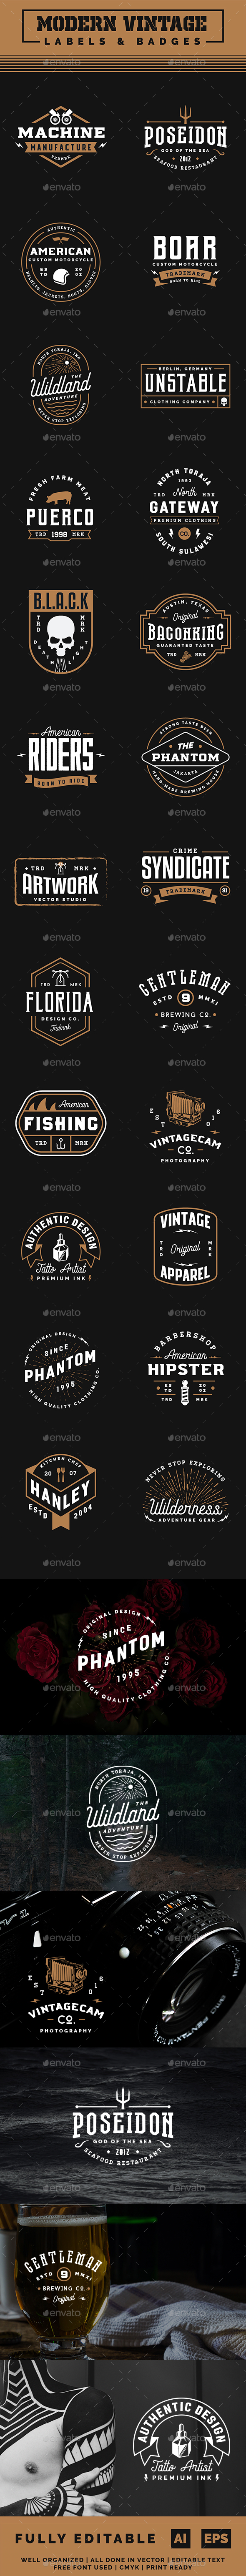 Modern Vintage Label and Badges Vol 3 - Badges & Stickers Web Elements